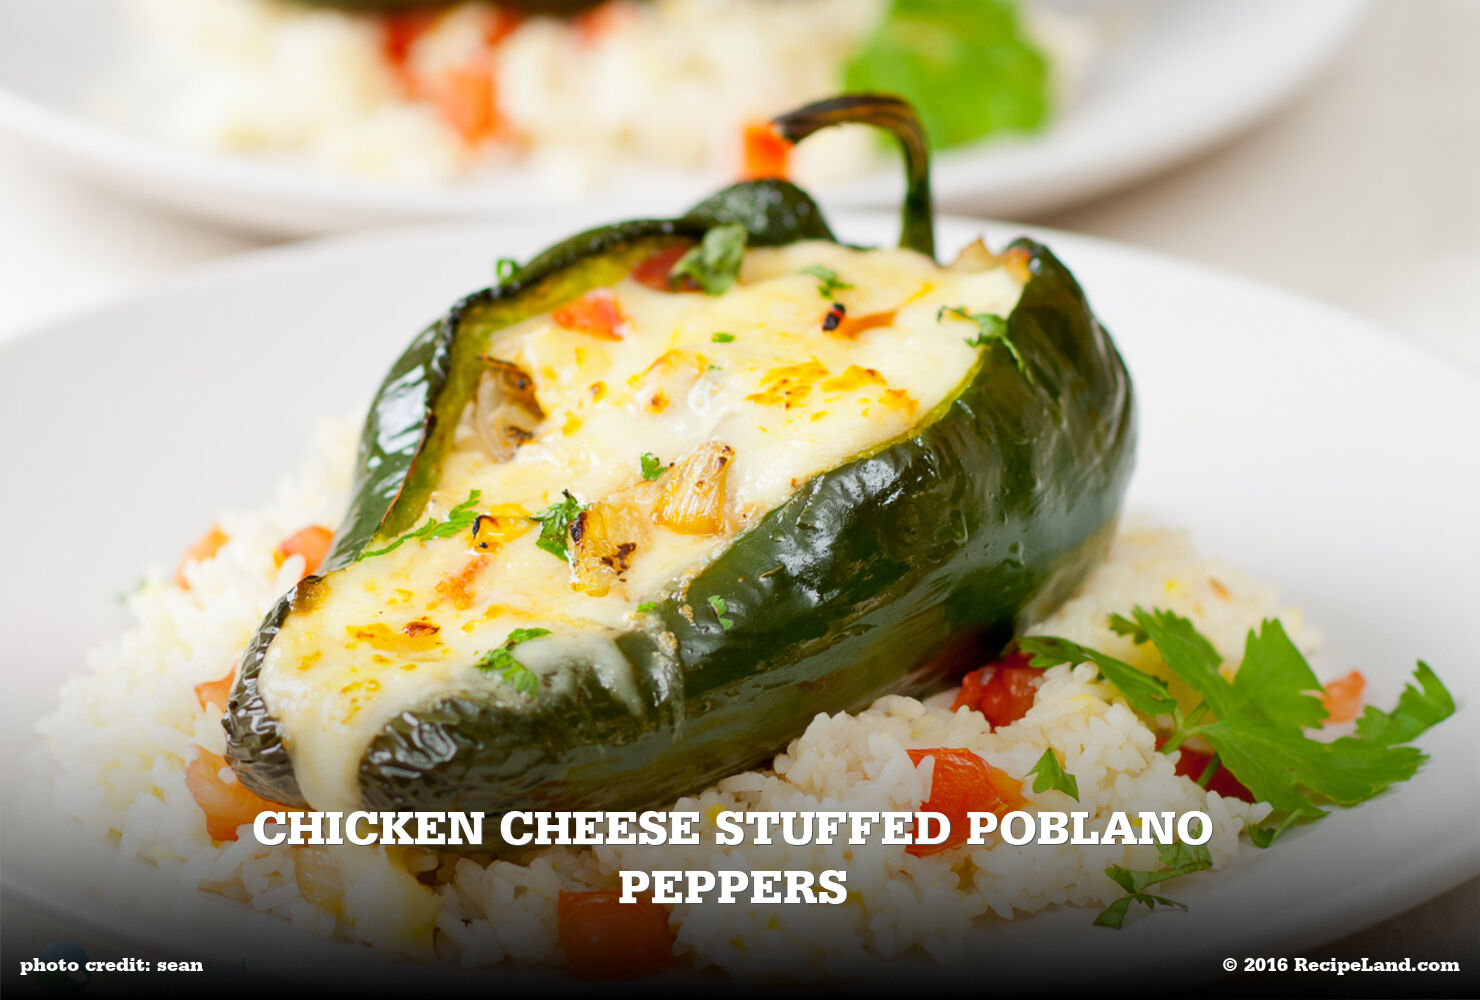 Chicken Cheese Stuffed Poblano Peppers